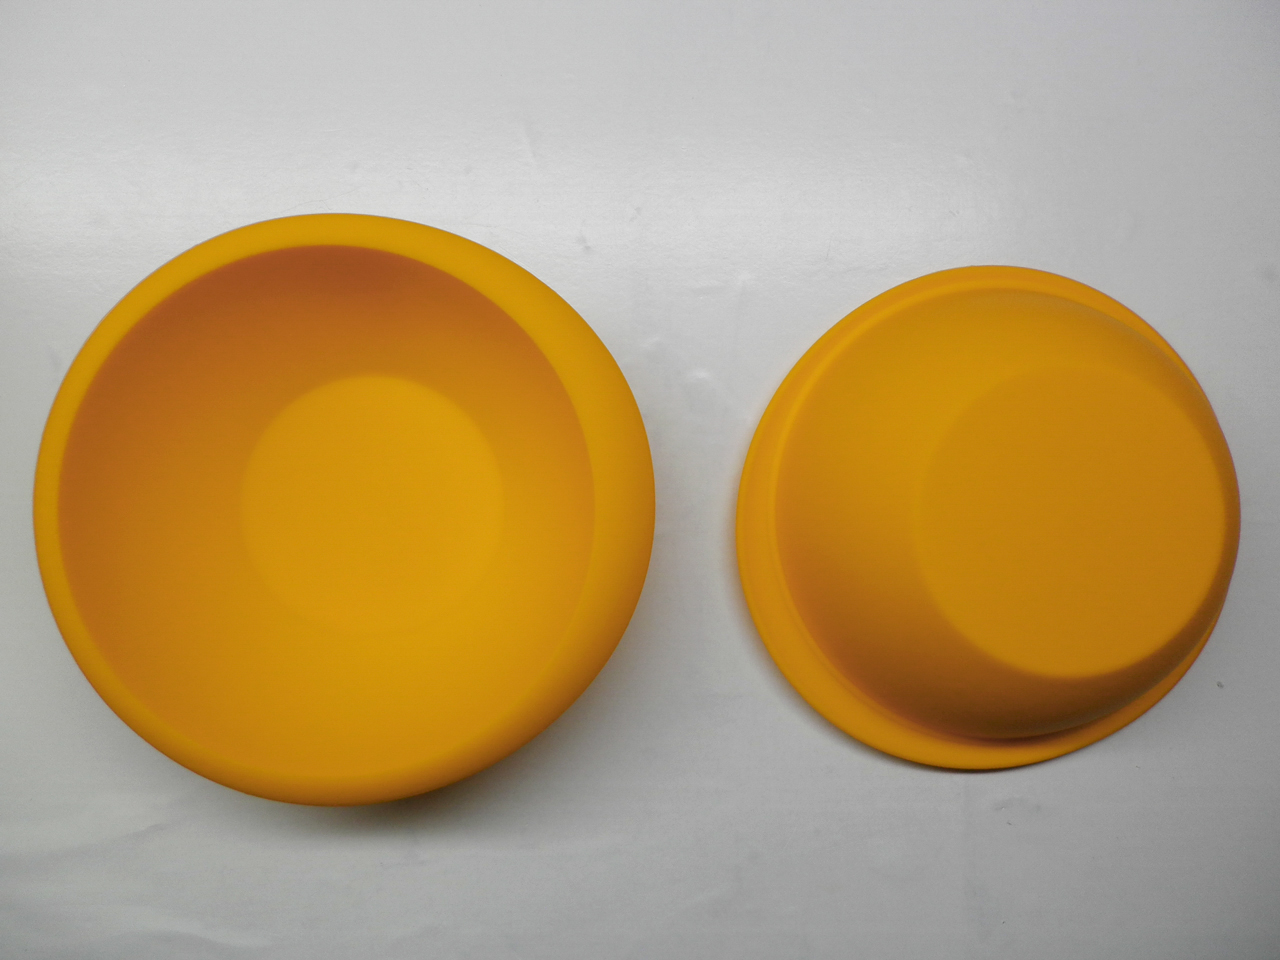 http://www.refinehksilicone.cn/data/images/product/20180418100221_101.jpg